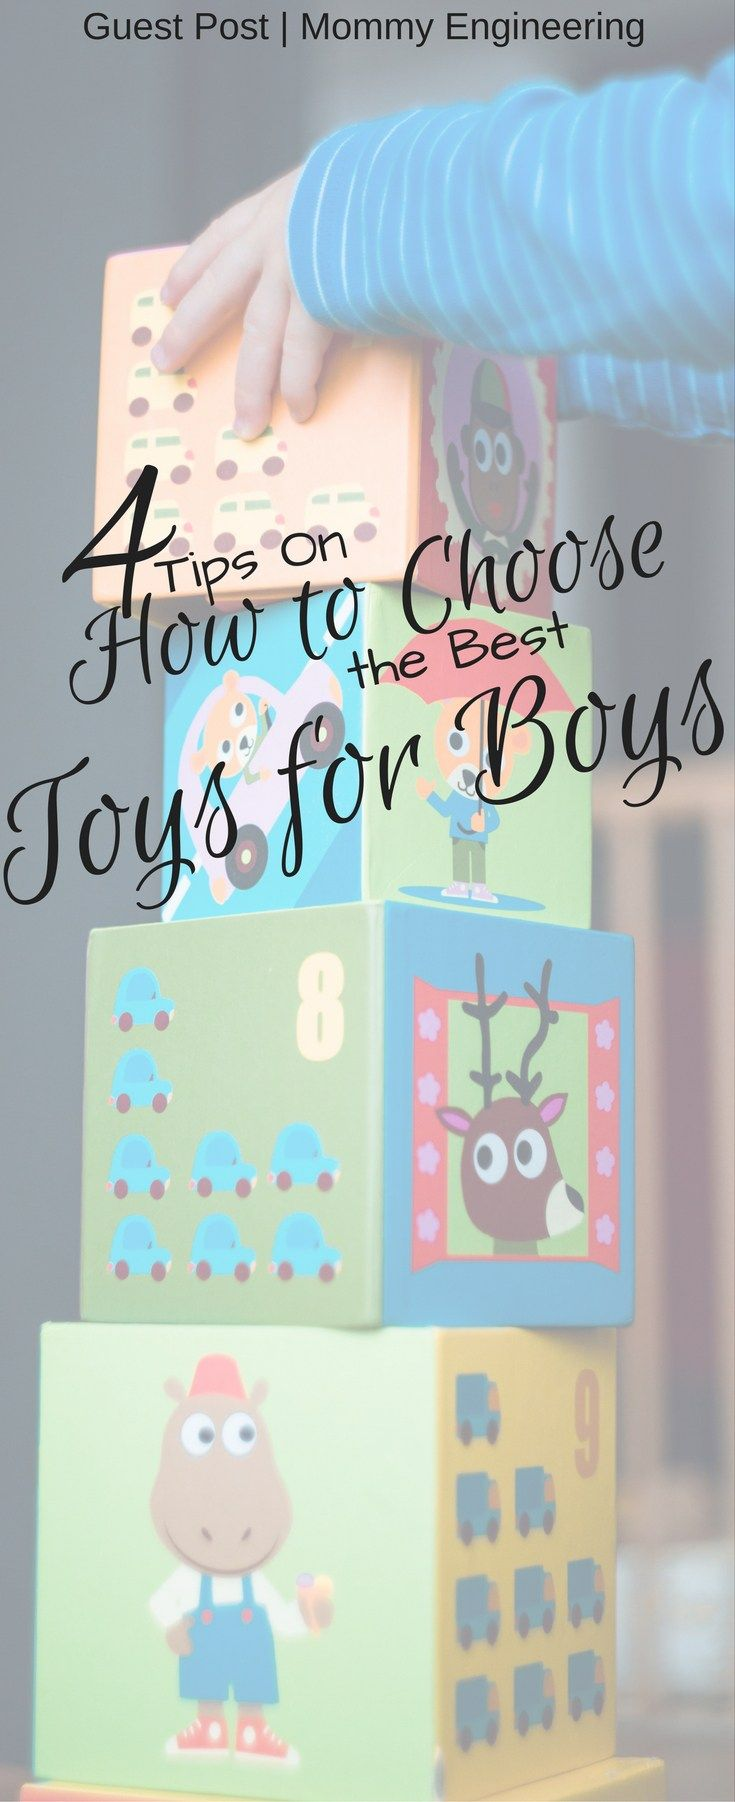 How to Choose the Best Toys for Boys